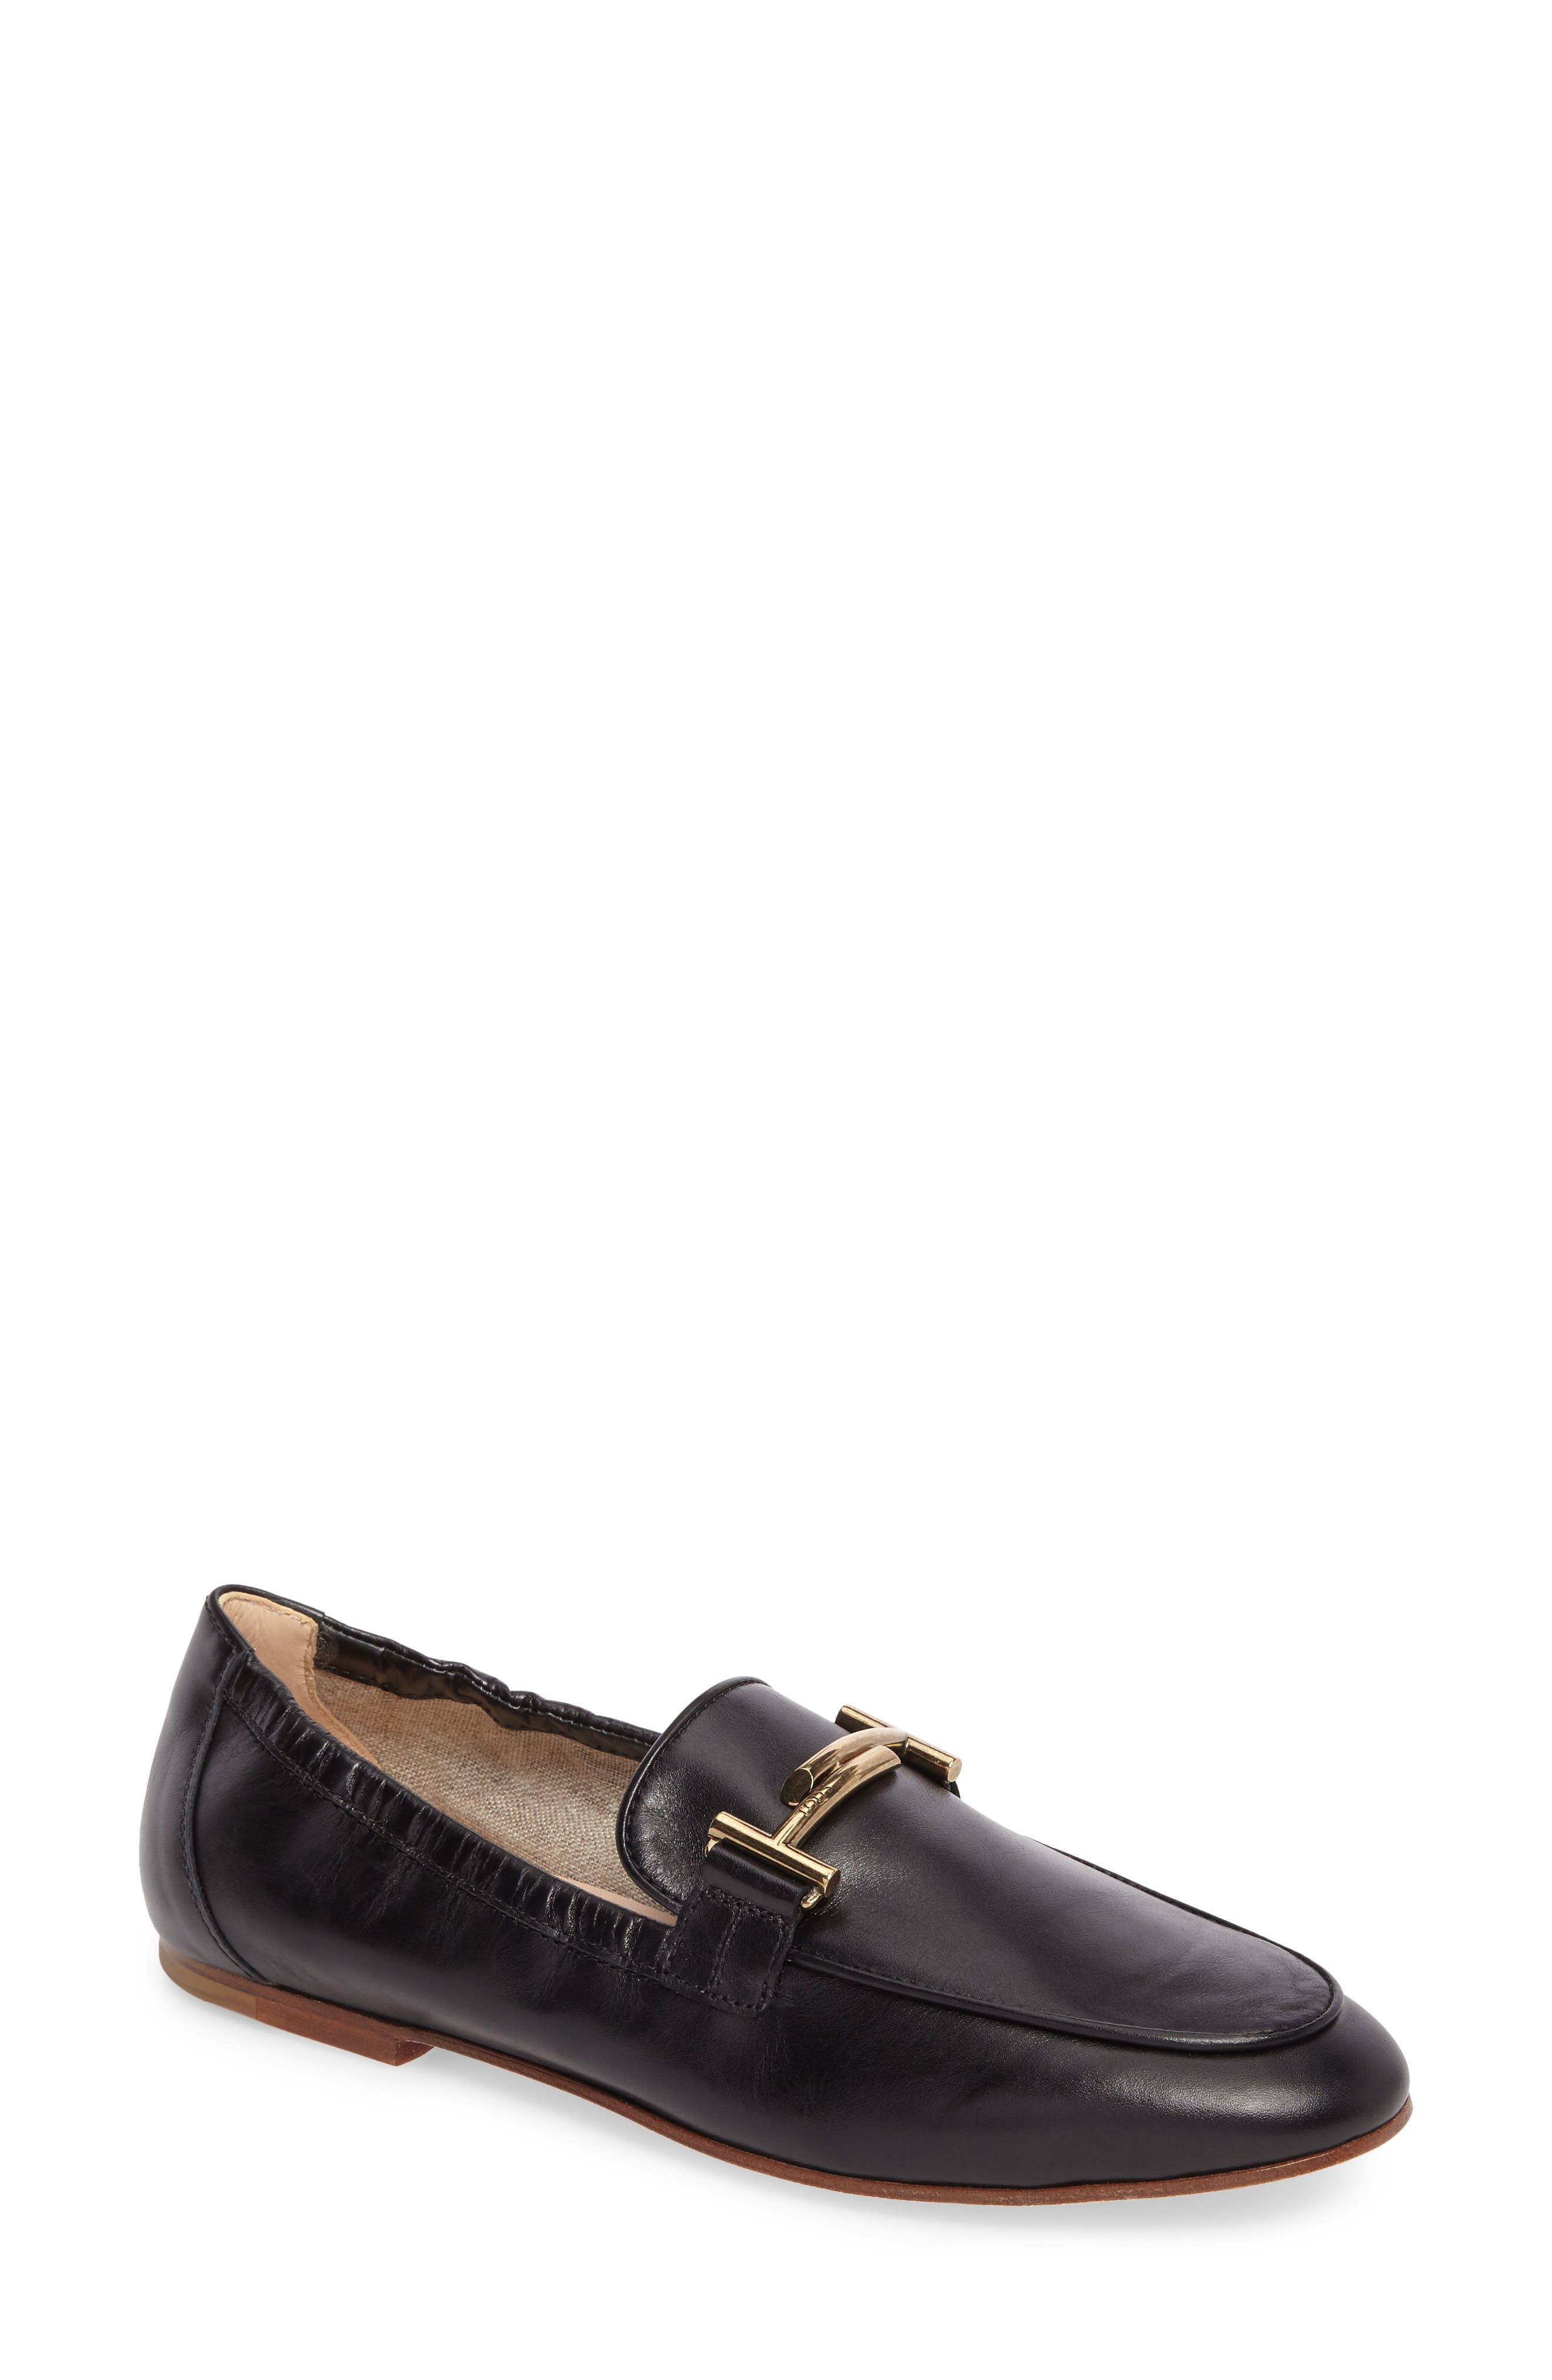 Double T Scrunch Loafer,                             Main thumbnail 1, color,                             001